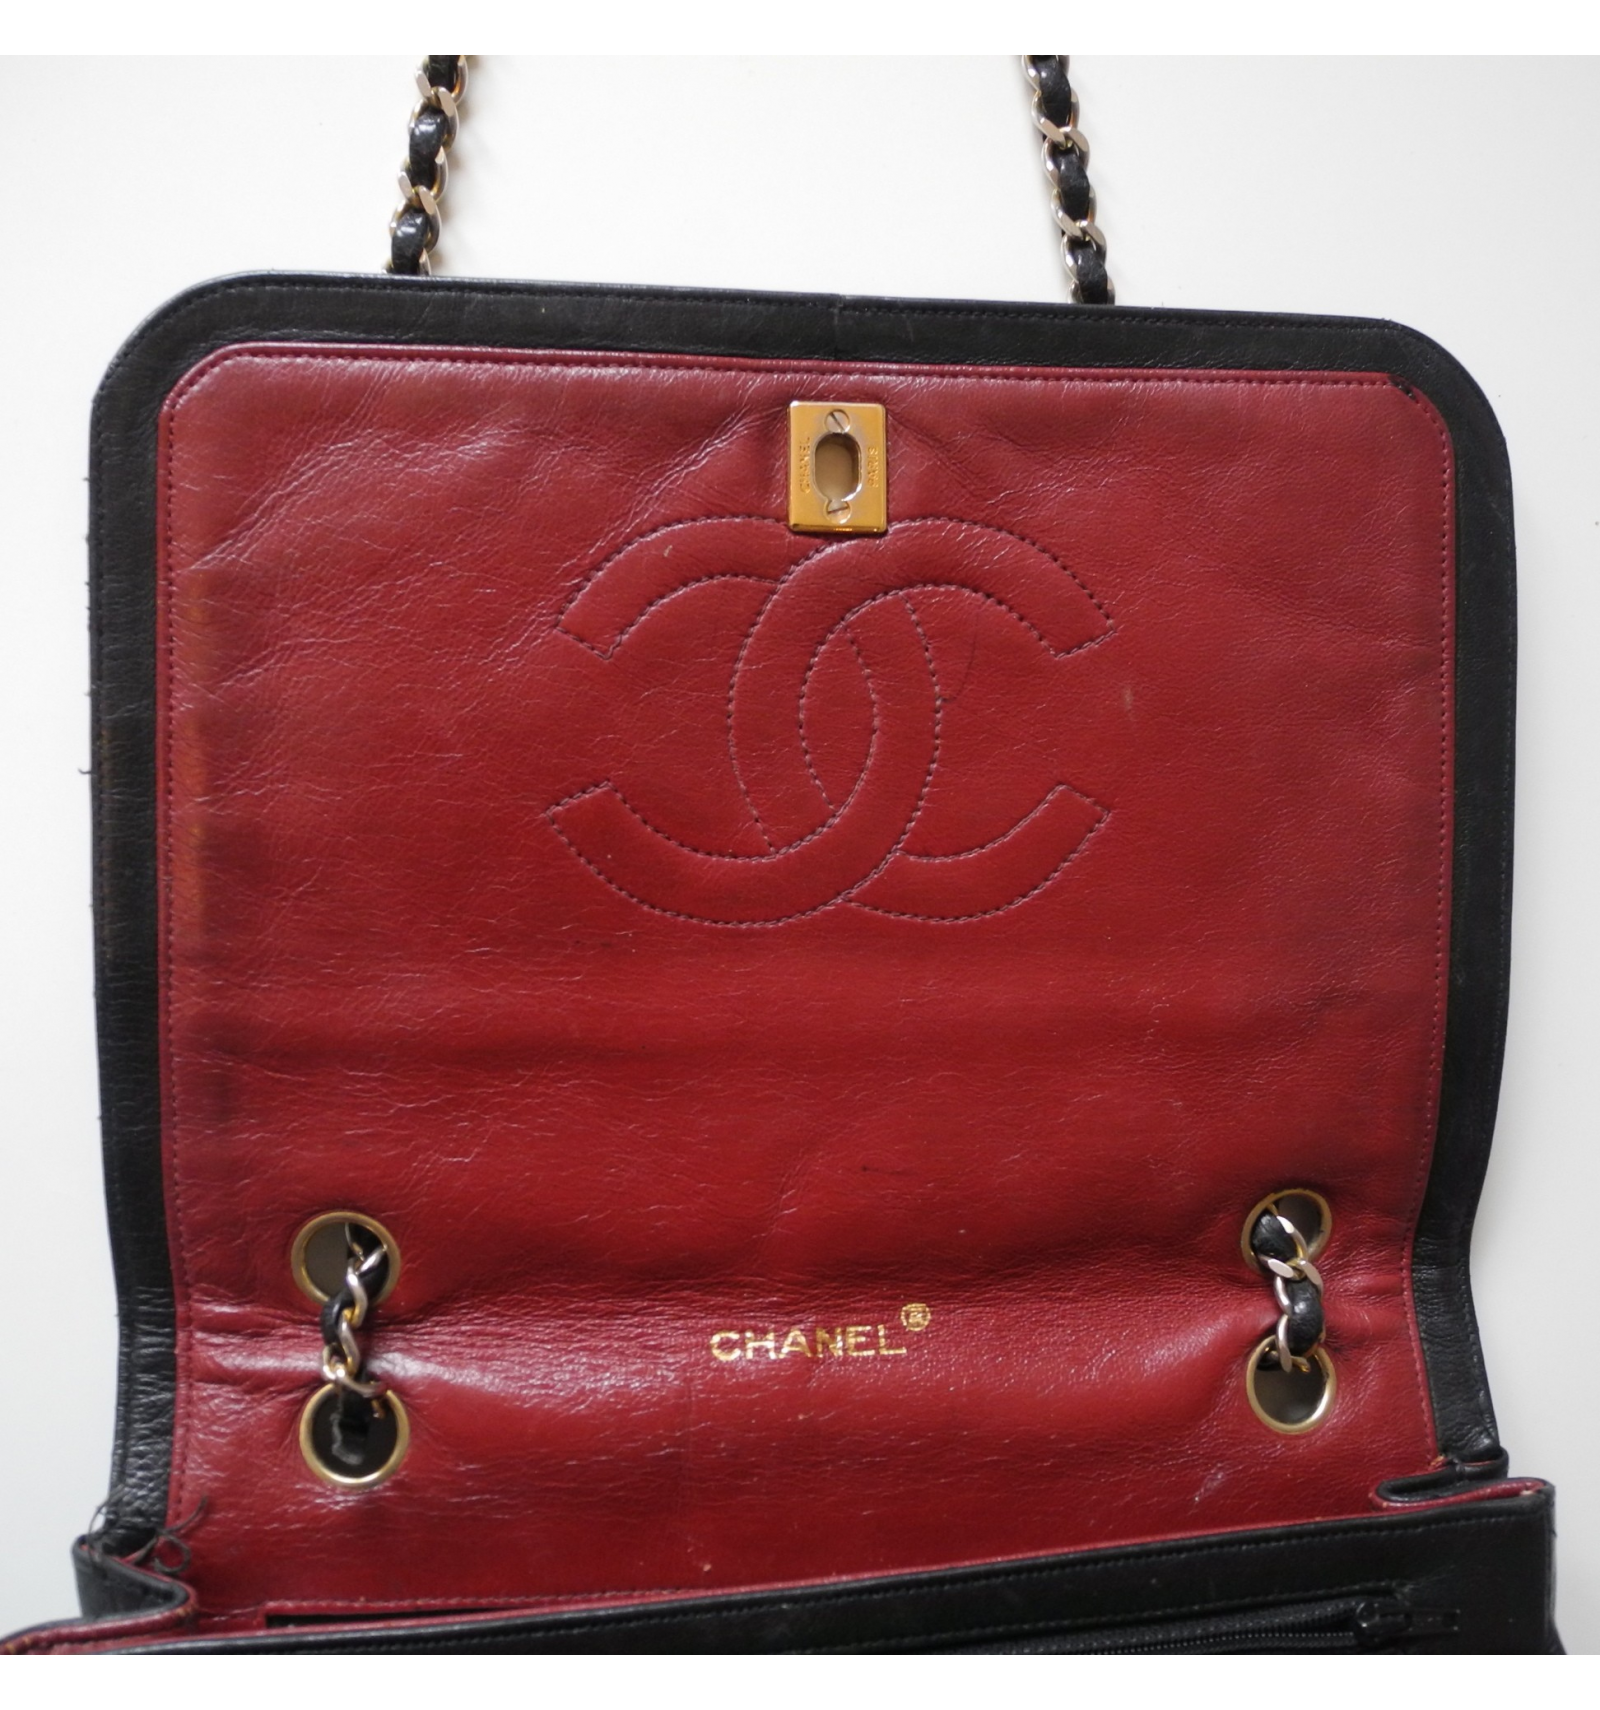 6d81aa54869a Sac Chanel Vintage